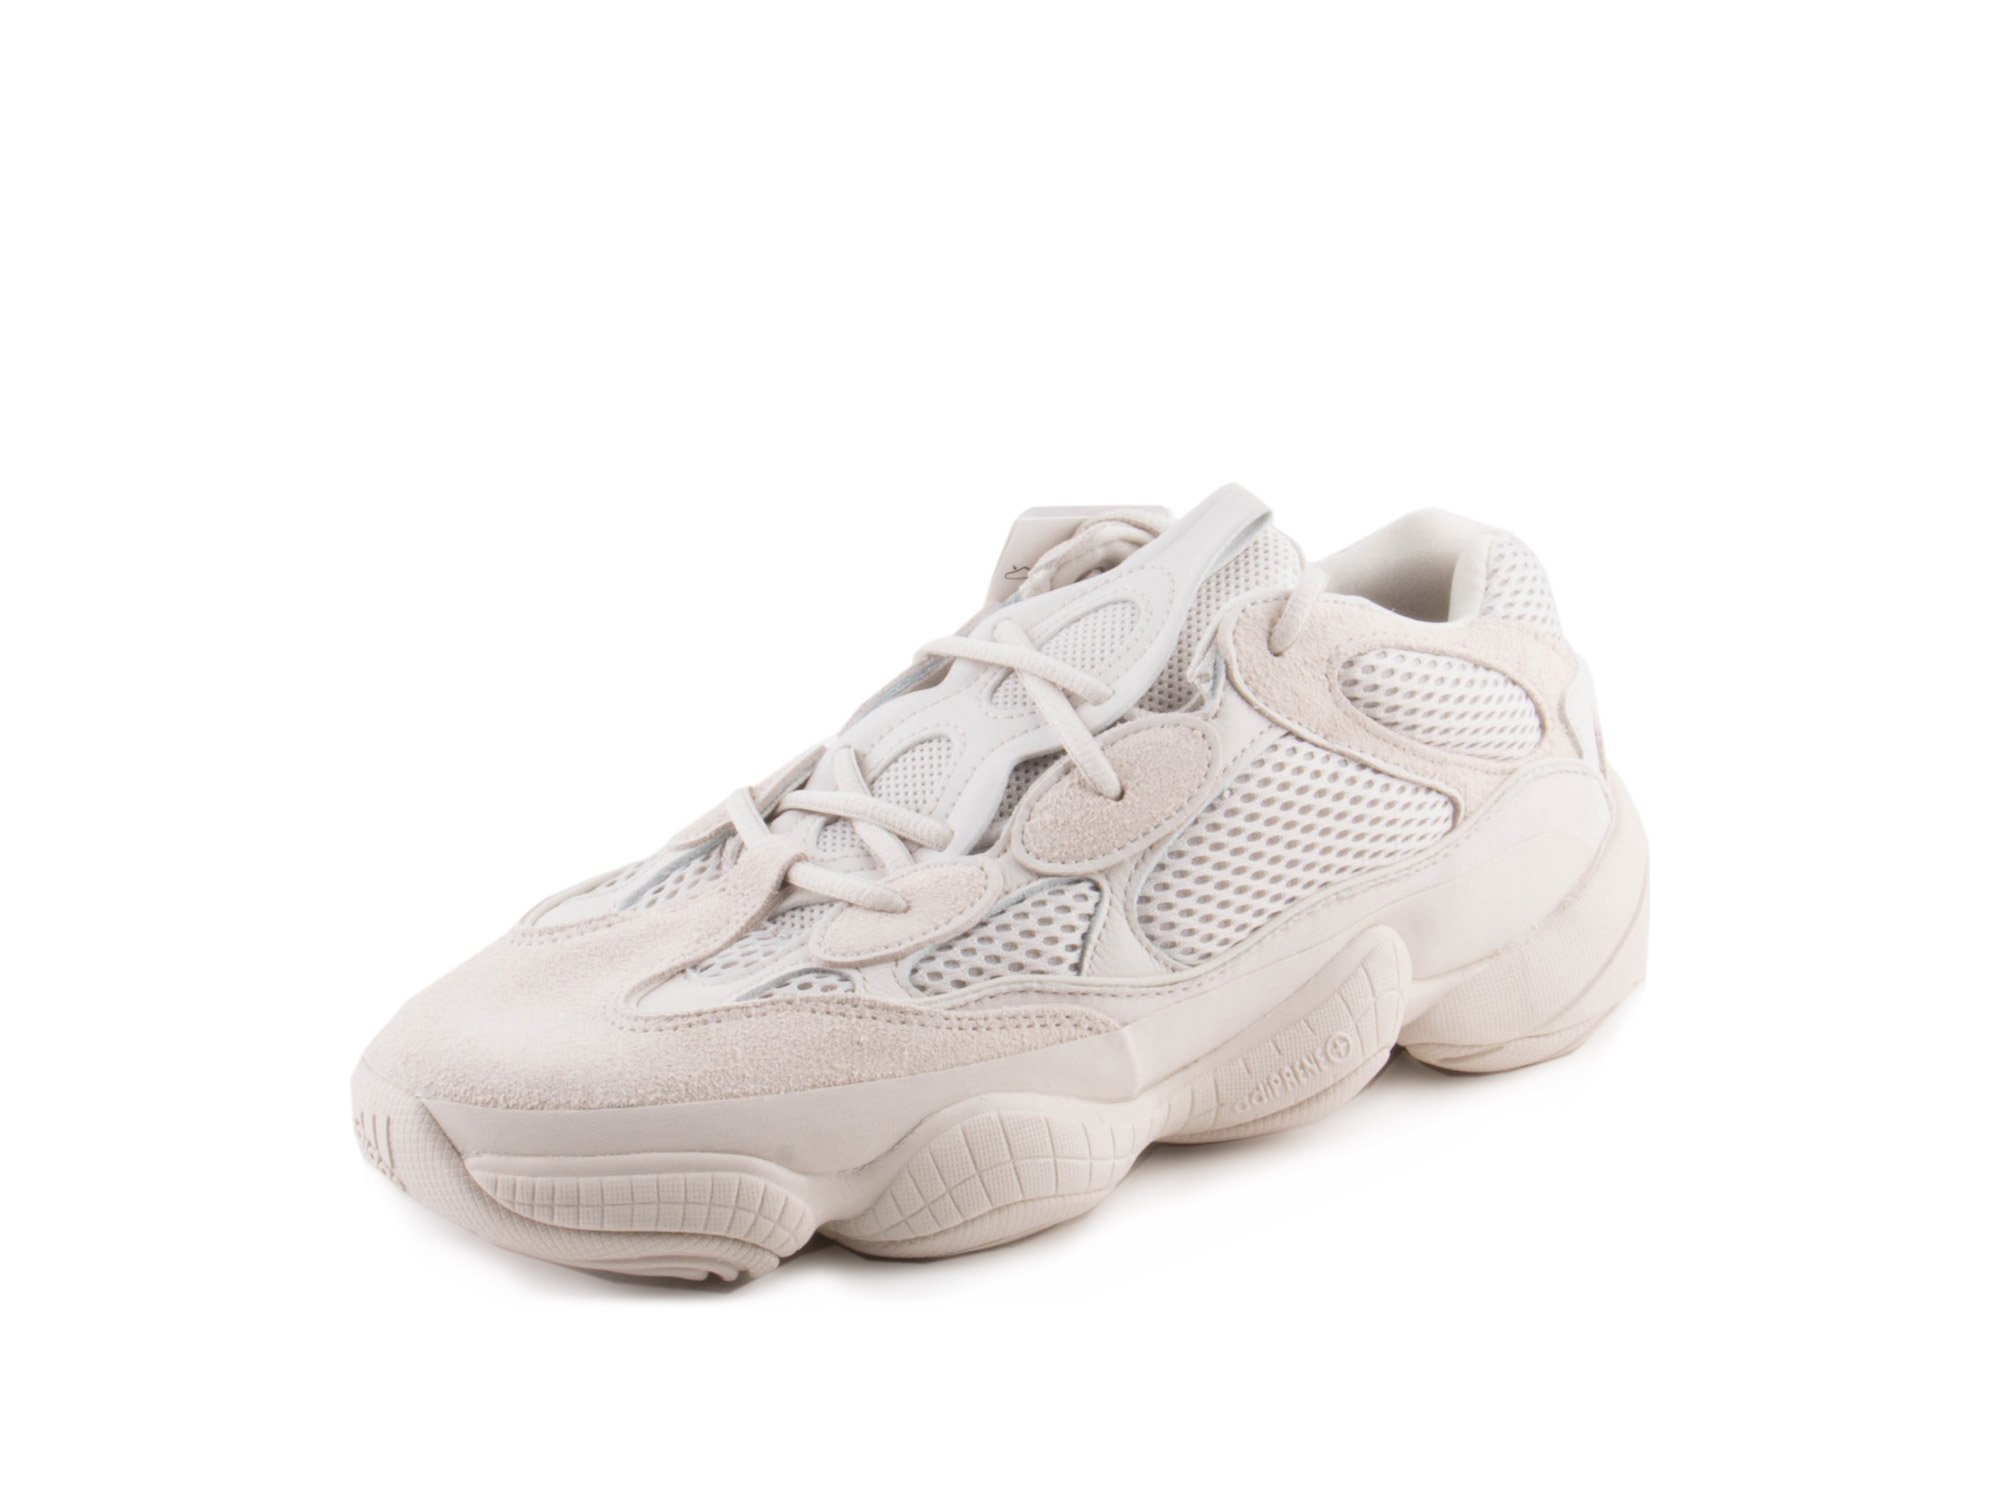 best loved da5ef 53906 Adidas Yeezy Desert Rat 500